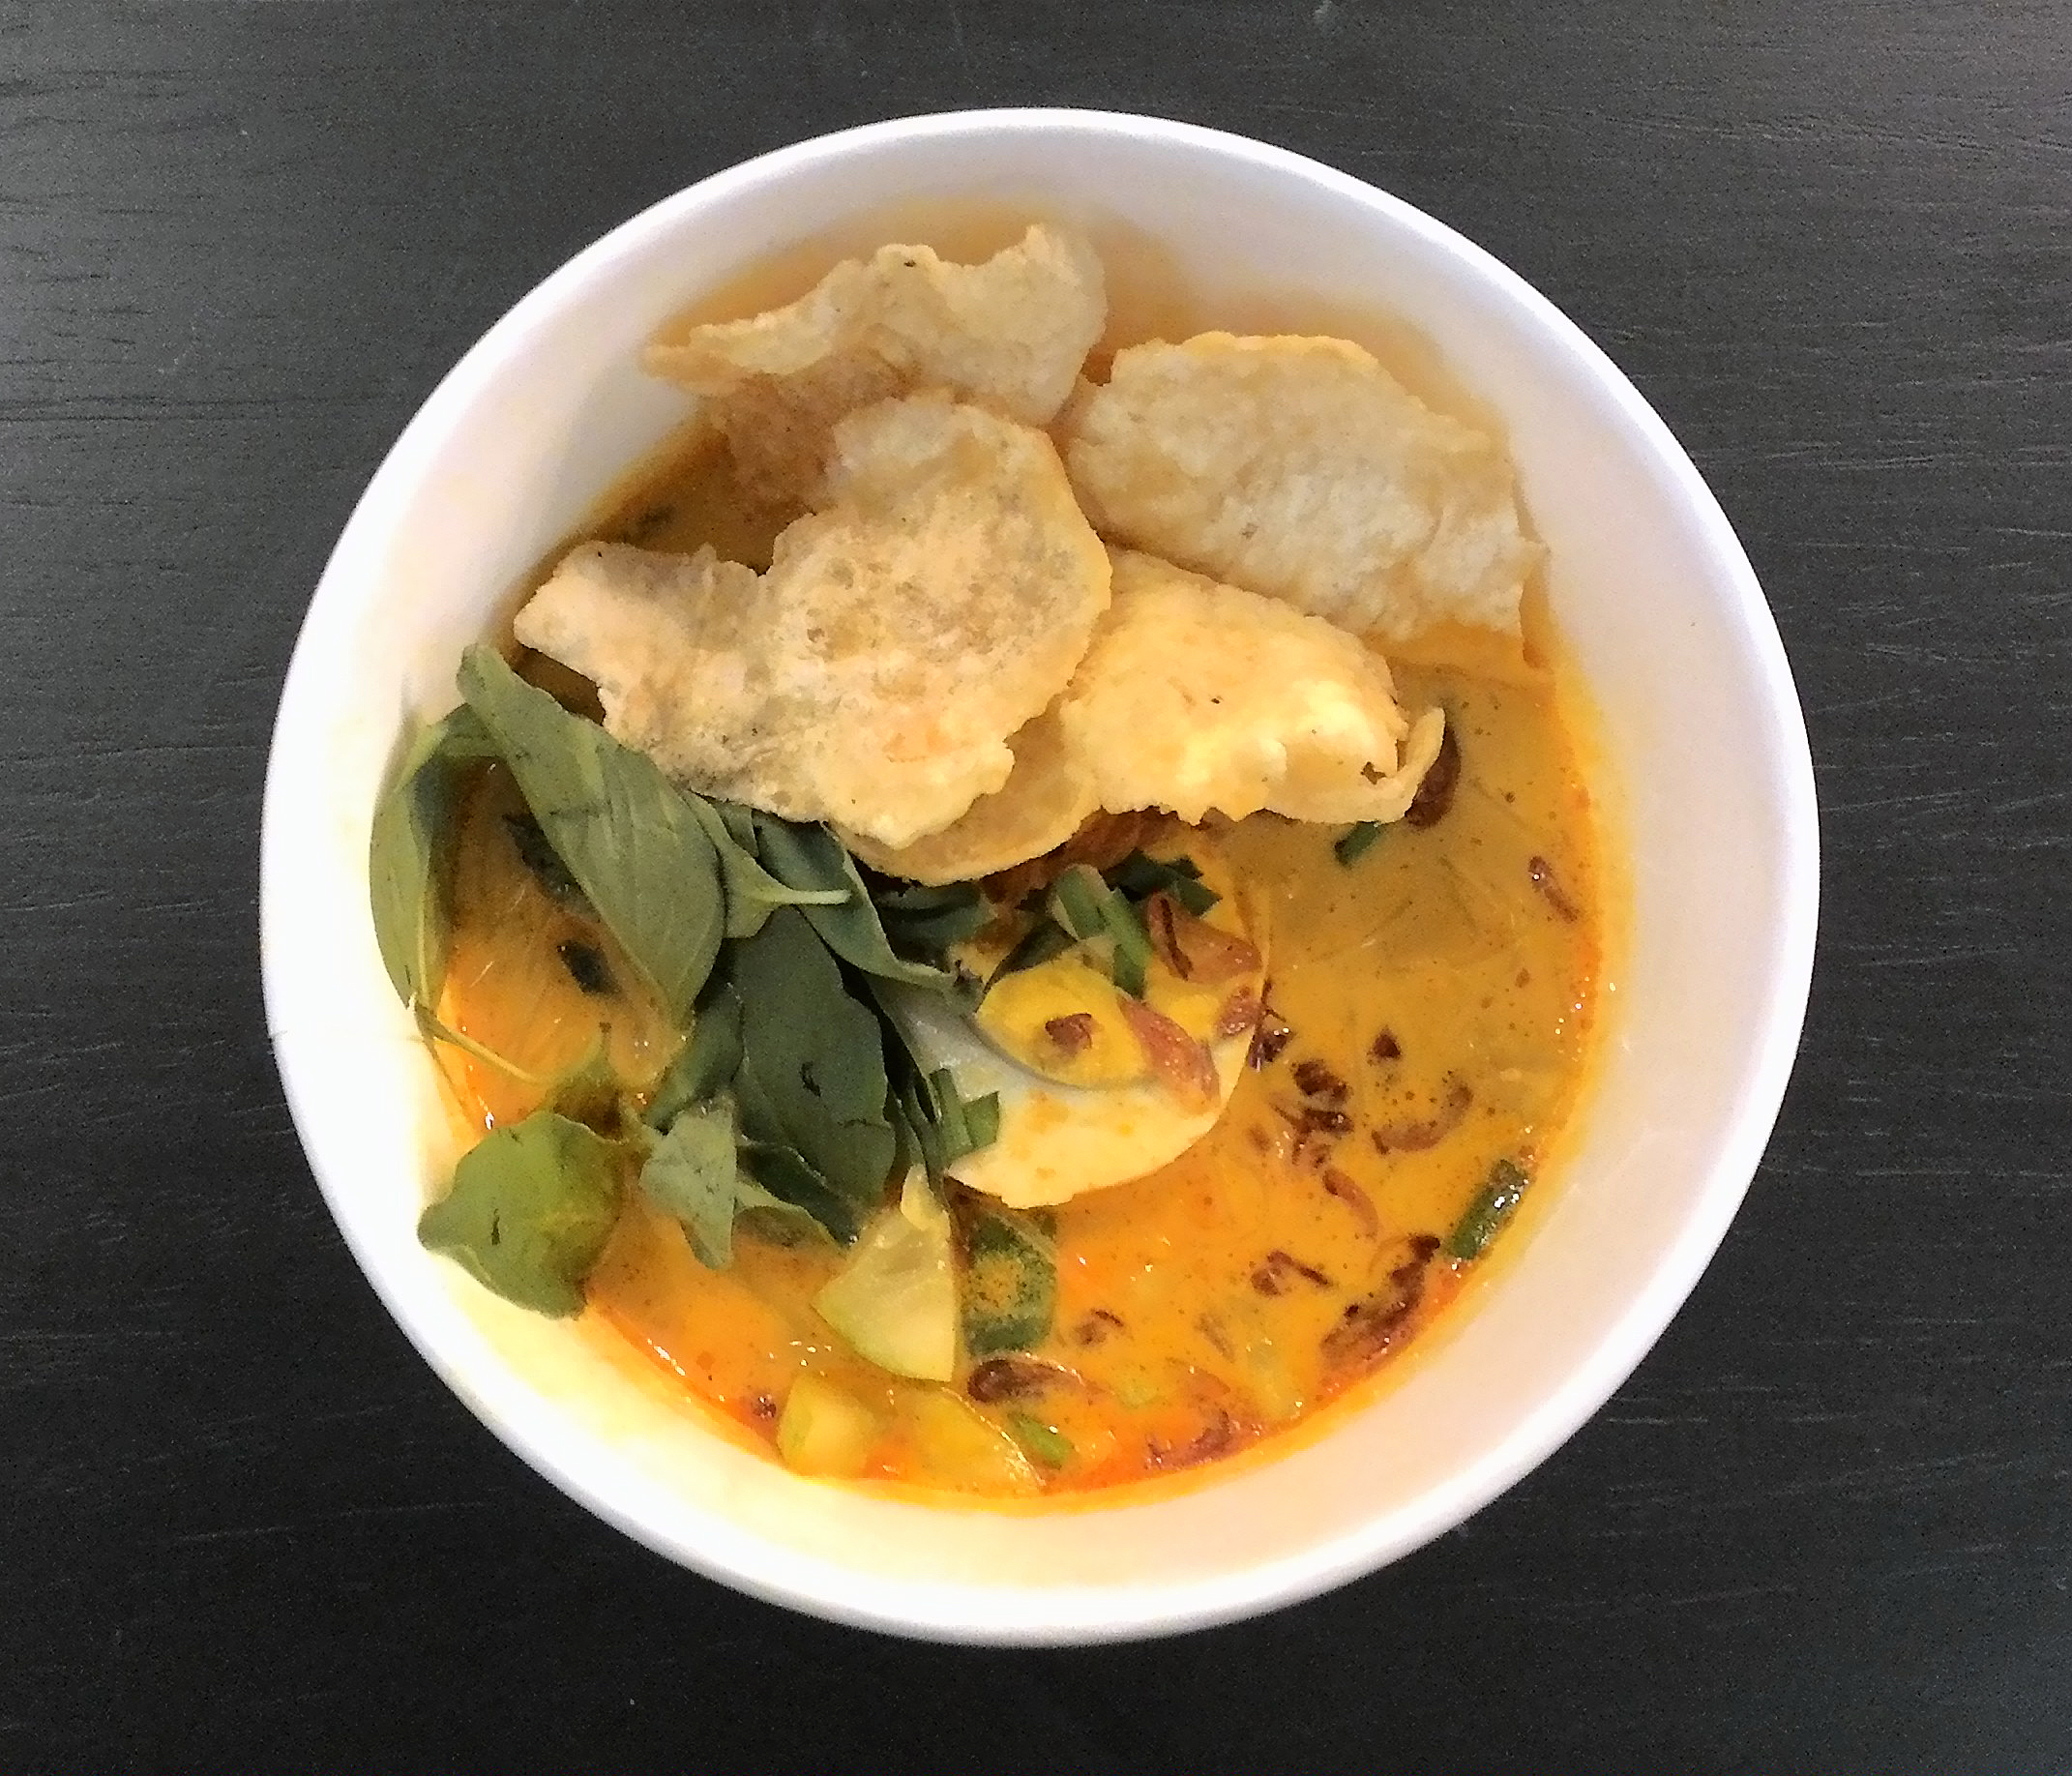 Laksa Wikipedia Kerupuk Kemplang Ikan By Ff Pgp Betawi With Emping Melinjo Cracker